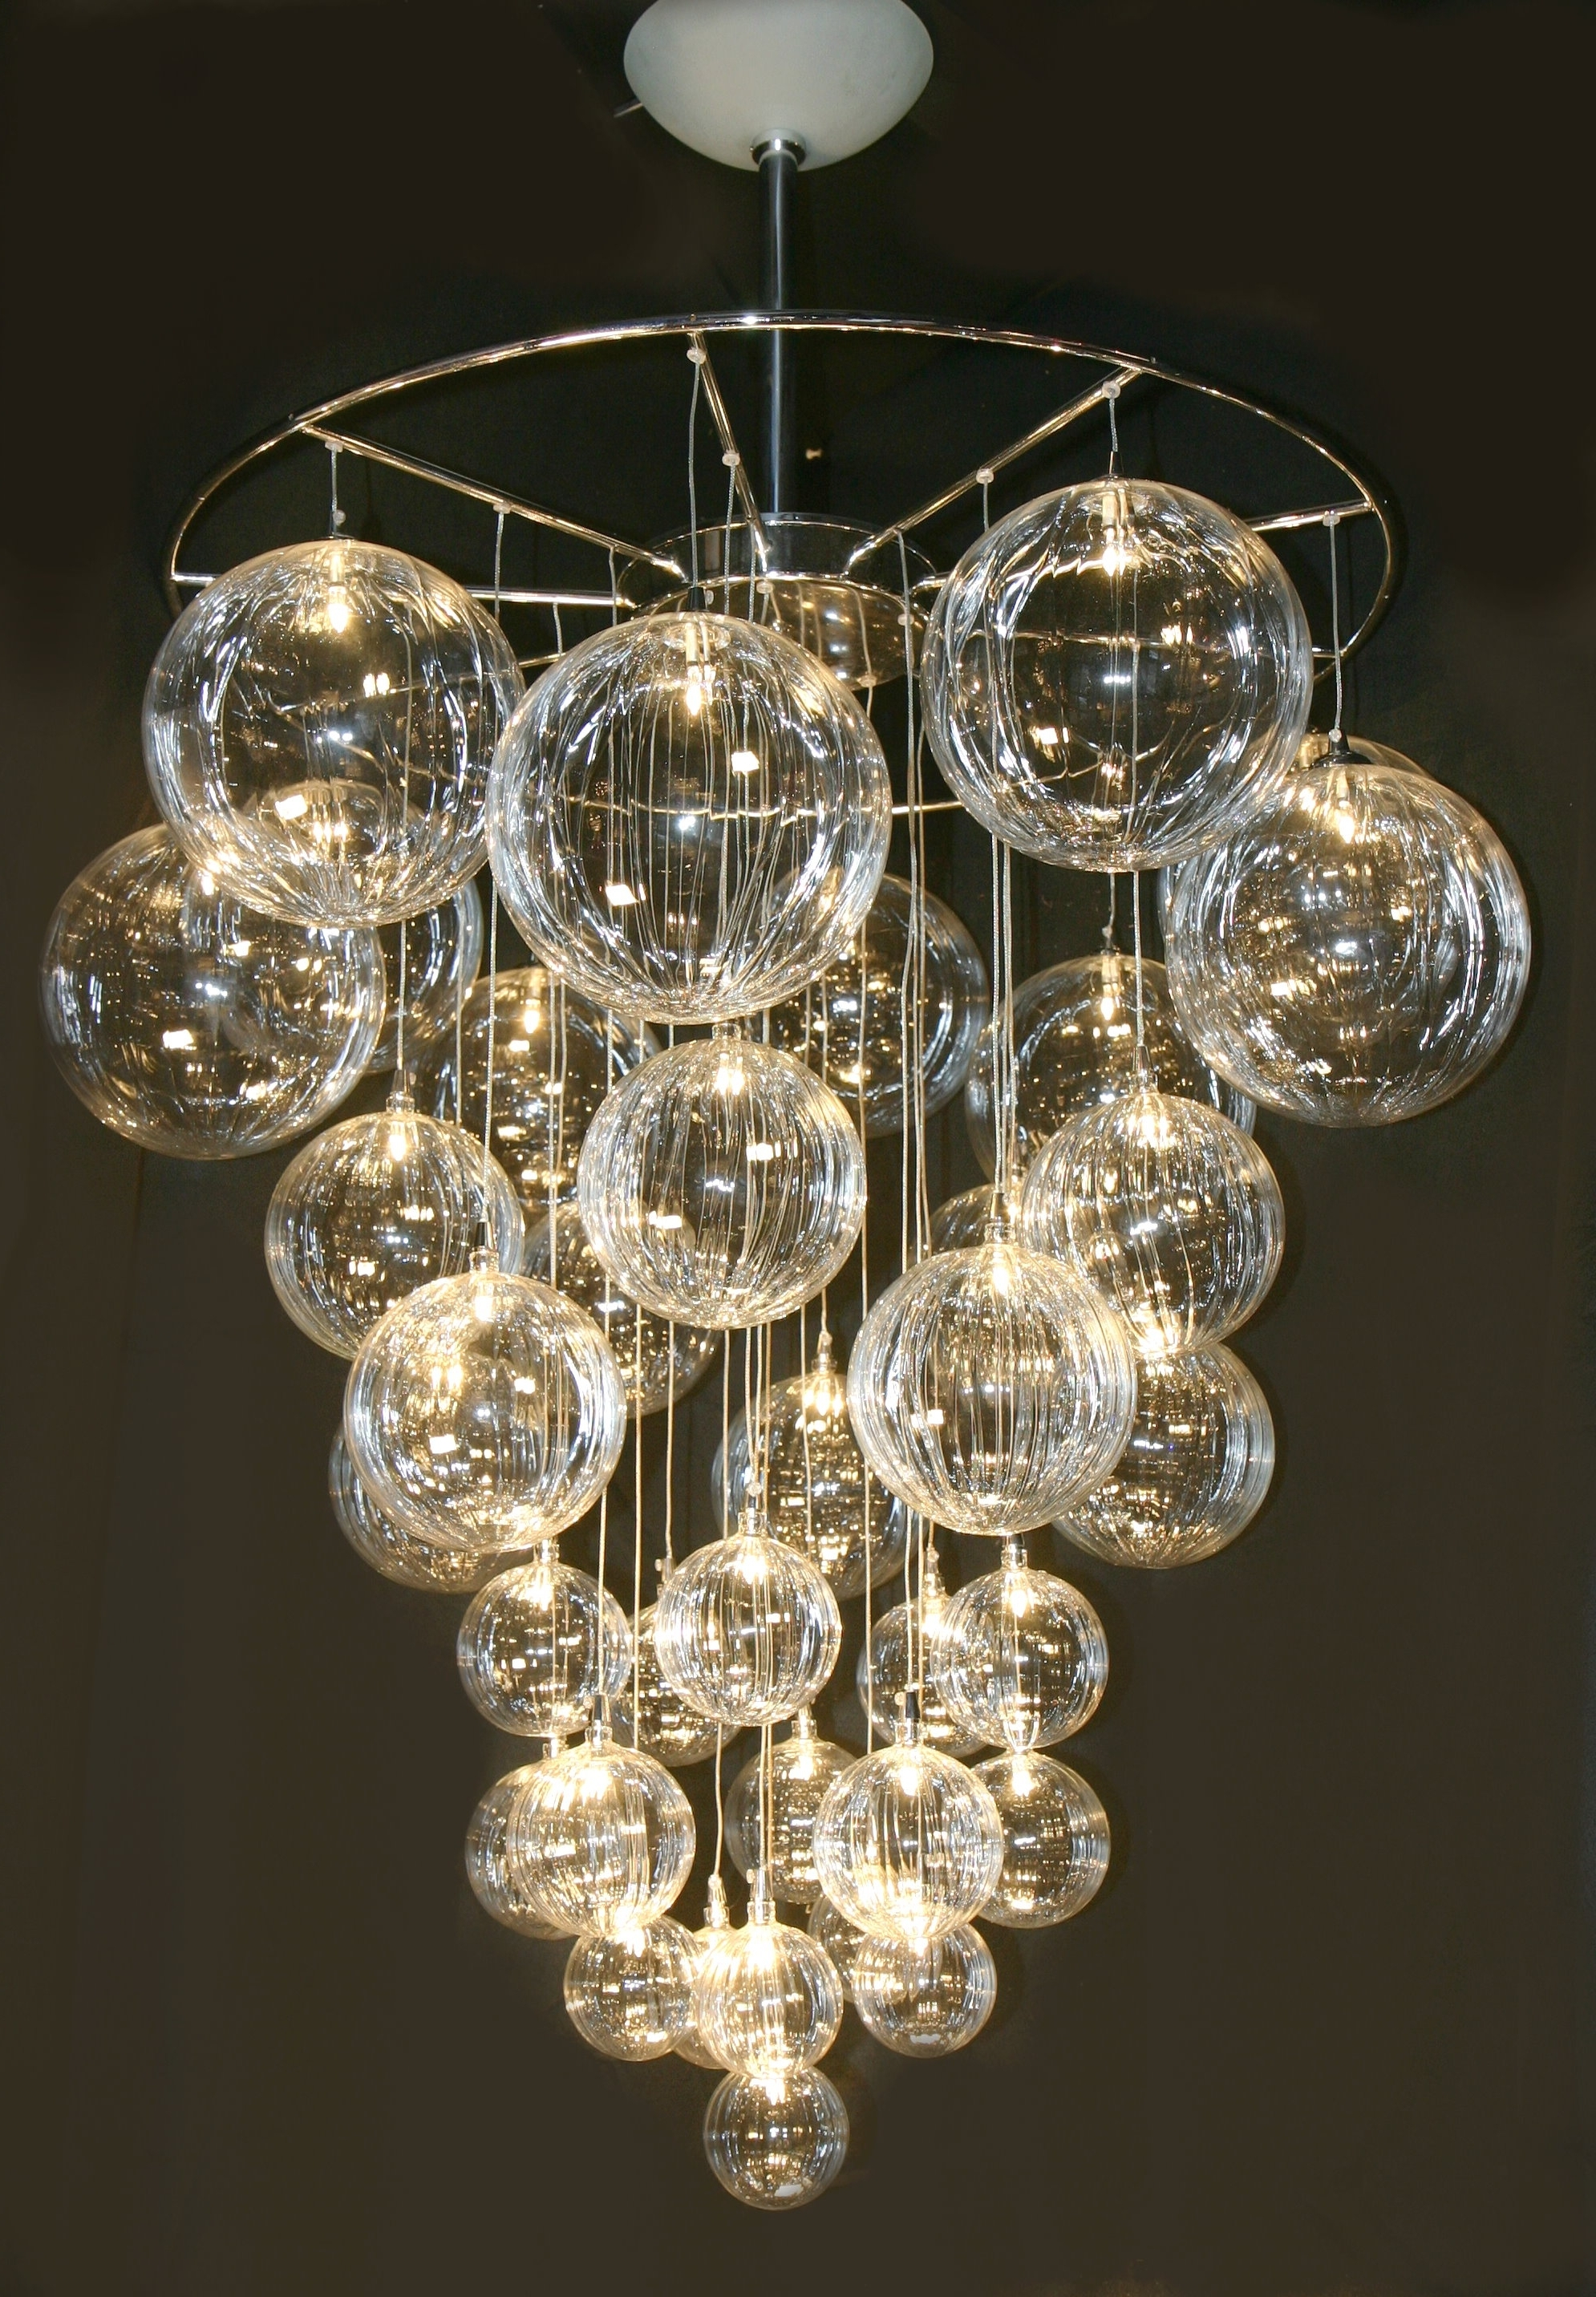 Newest Light : Contemporary Lighting Chandeliers Ideas And Antique All For Unusual Chandeliers (View 7 of 15)